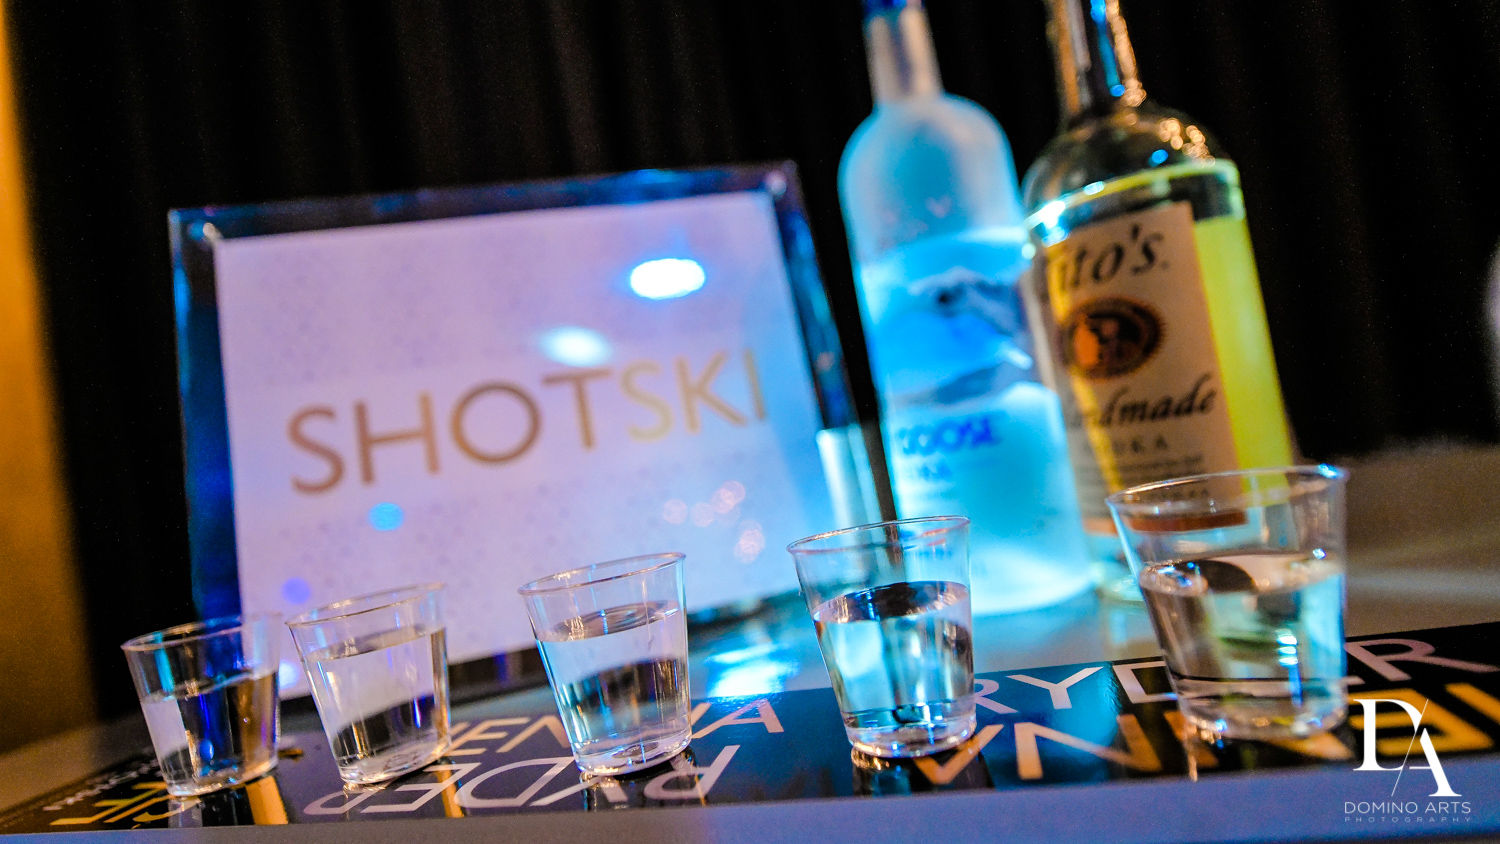 shotski at Designer invitations at Stylish Architectural B'Nai Mitzvah at the NEW JW Marriott Miami Turnberry Resort & Spa by Domino Arts Photography